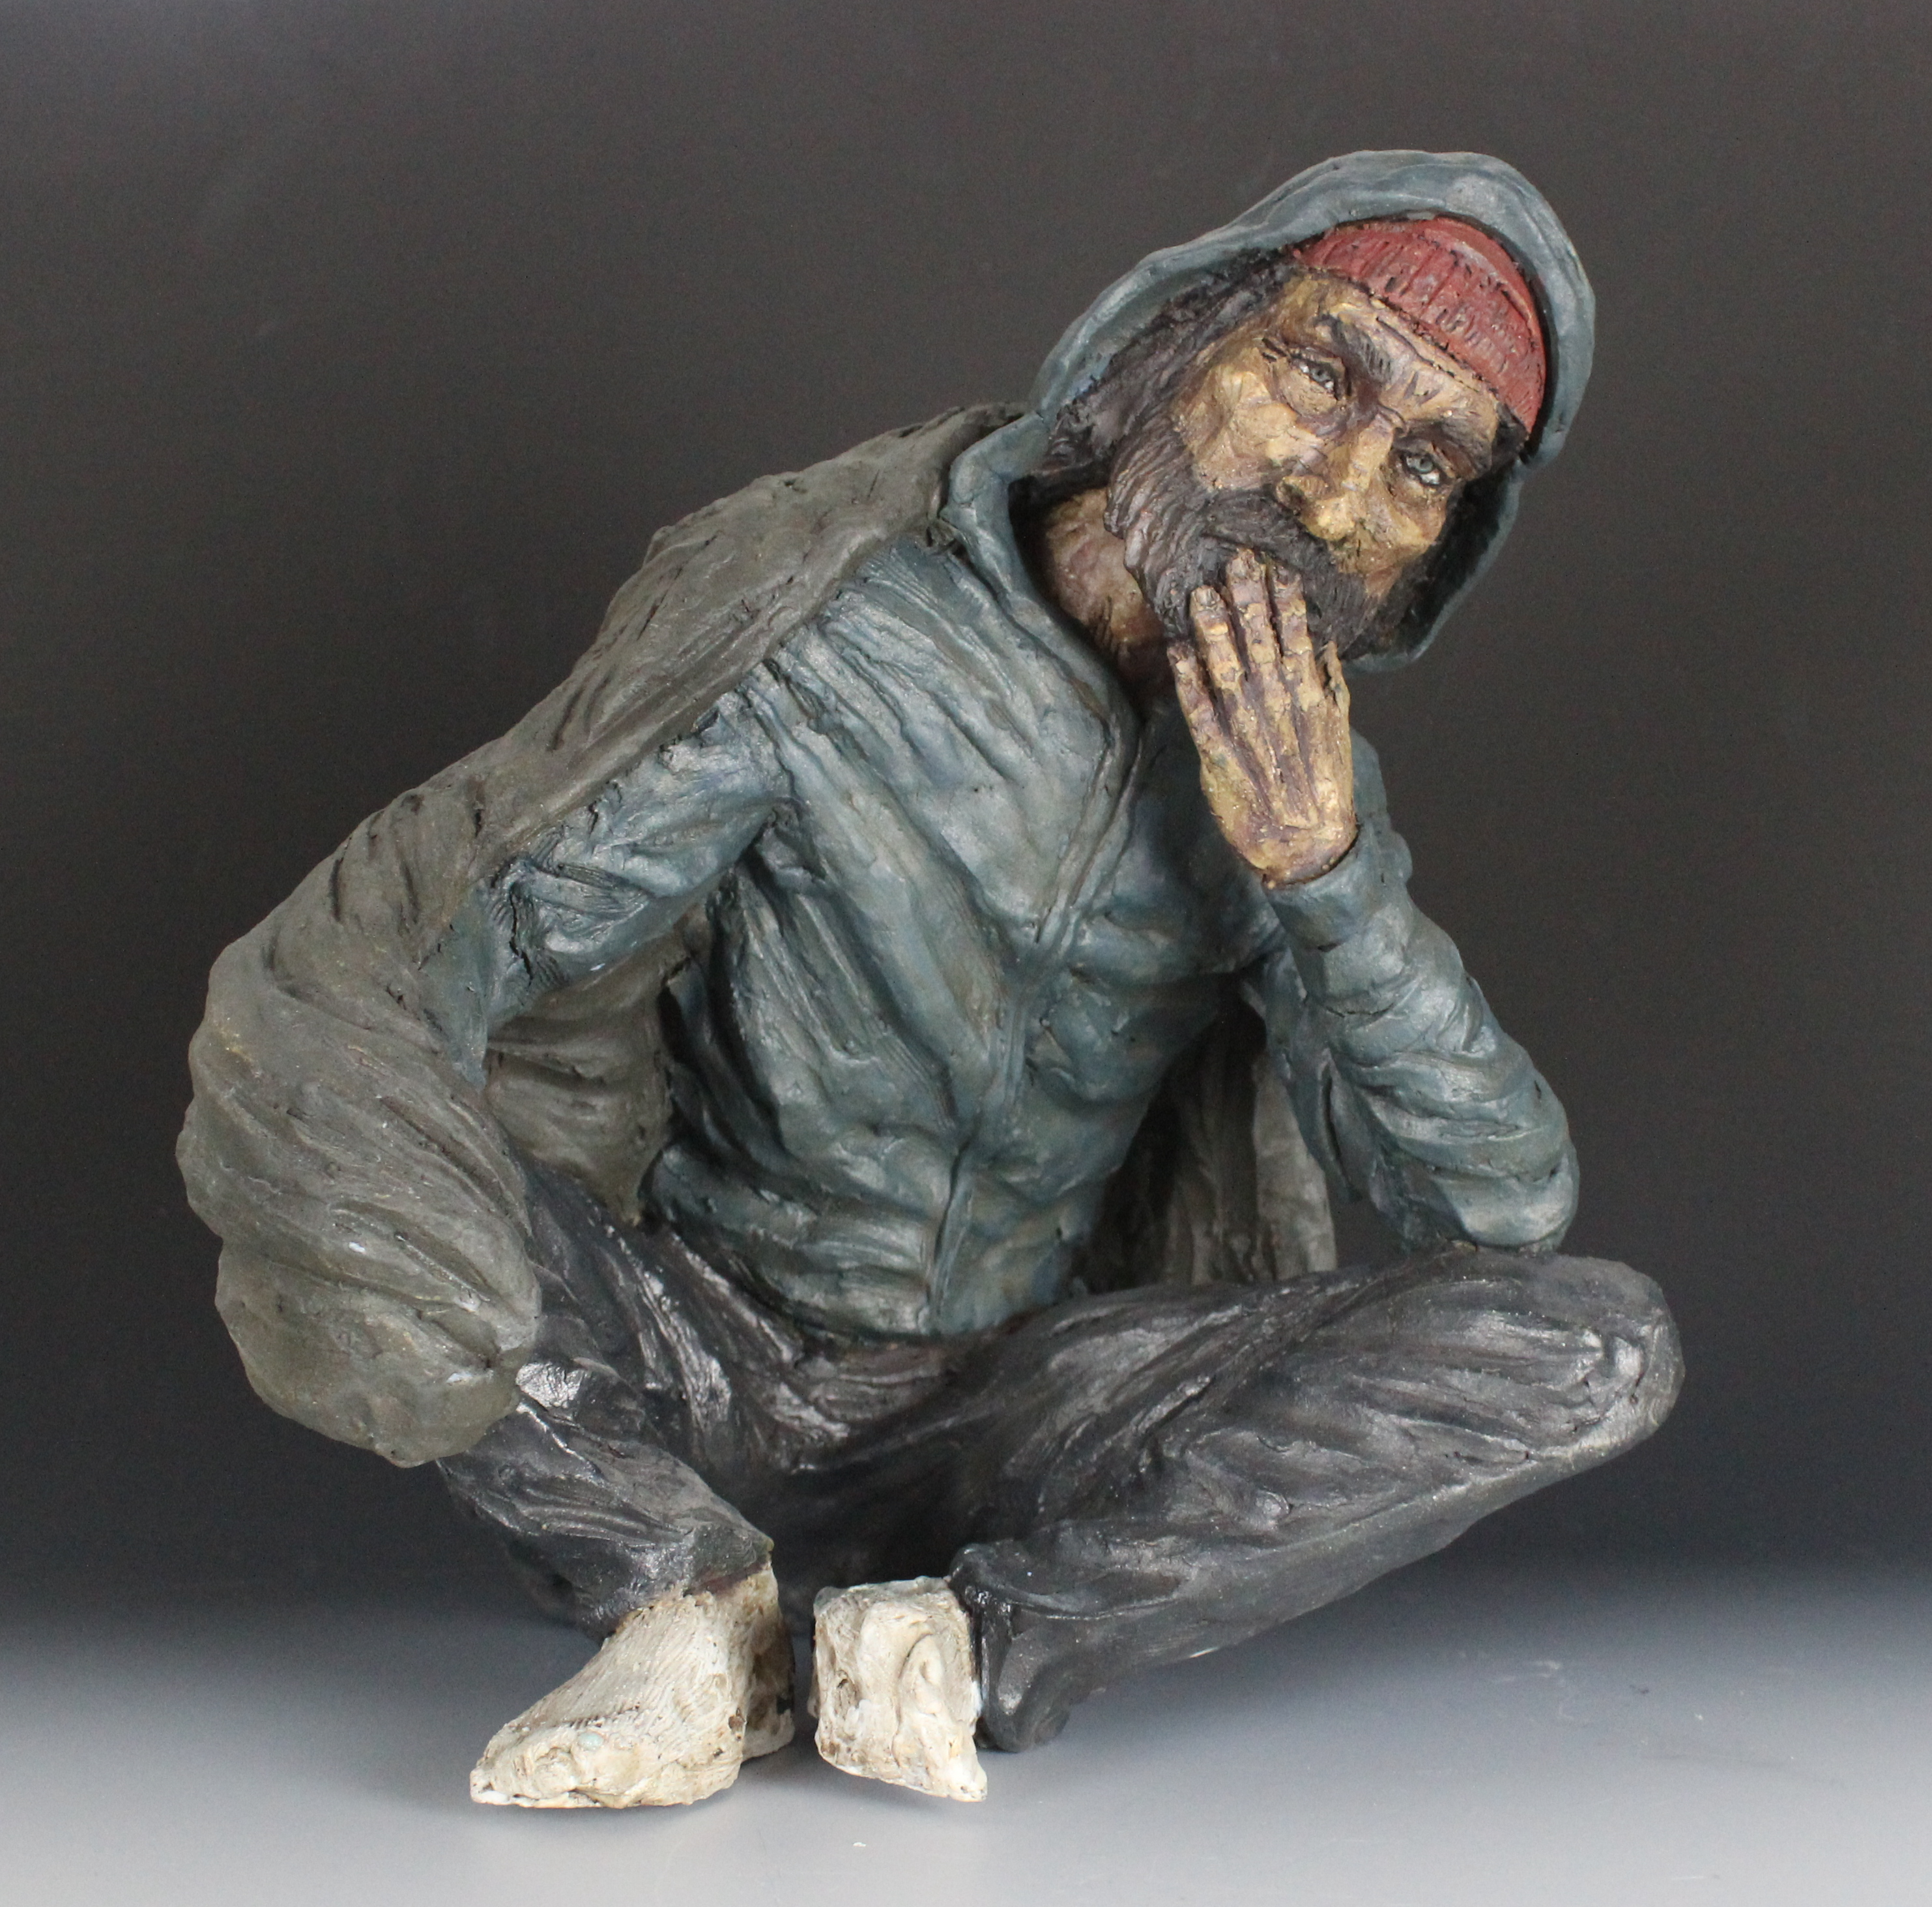 homeless maquette